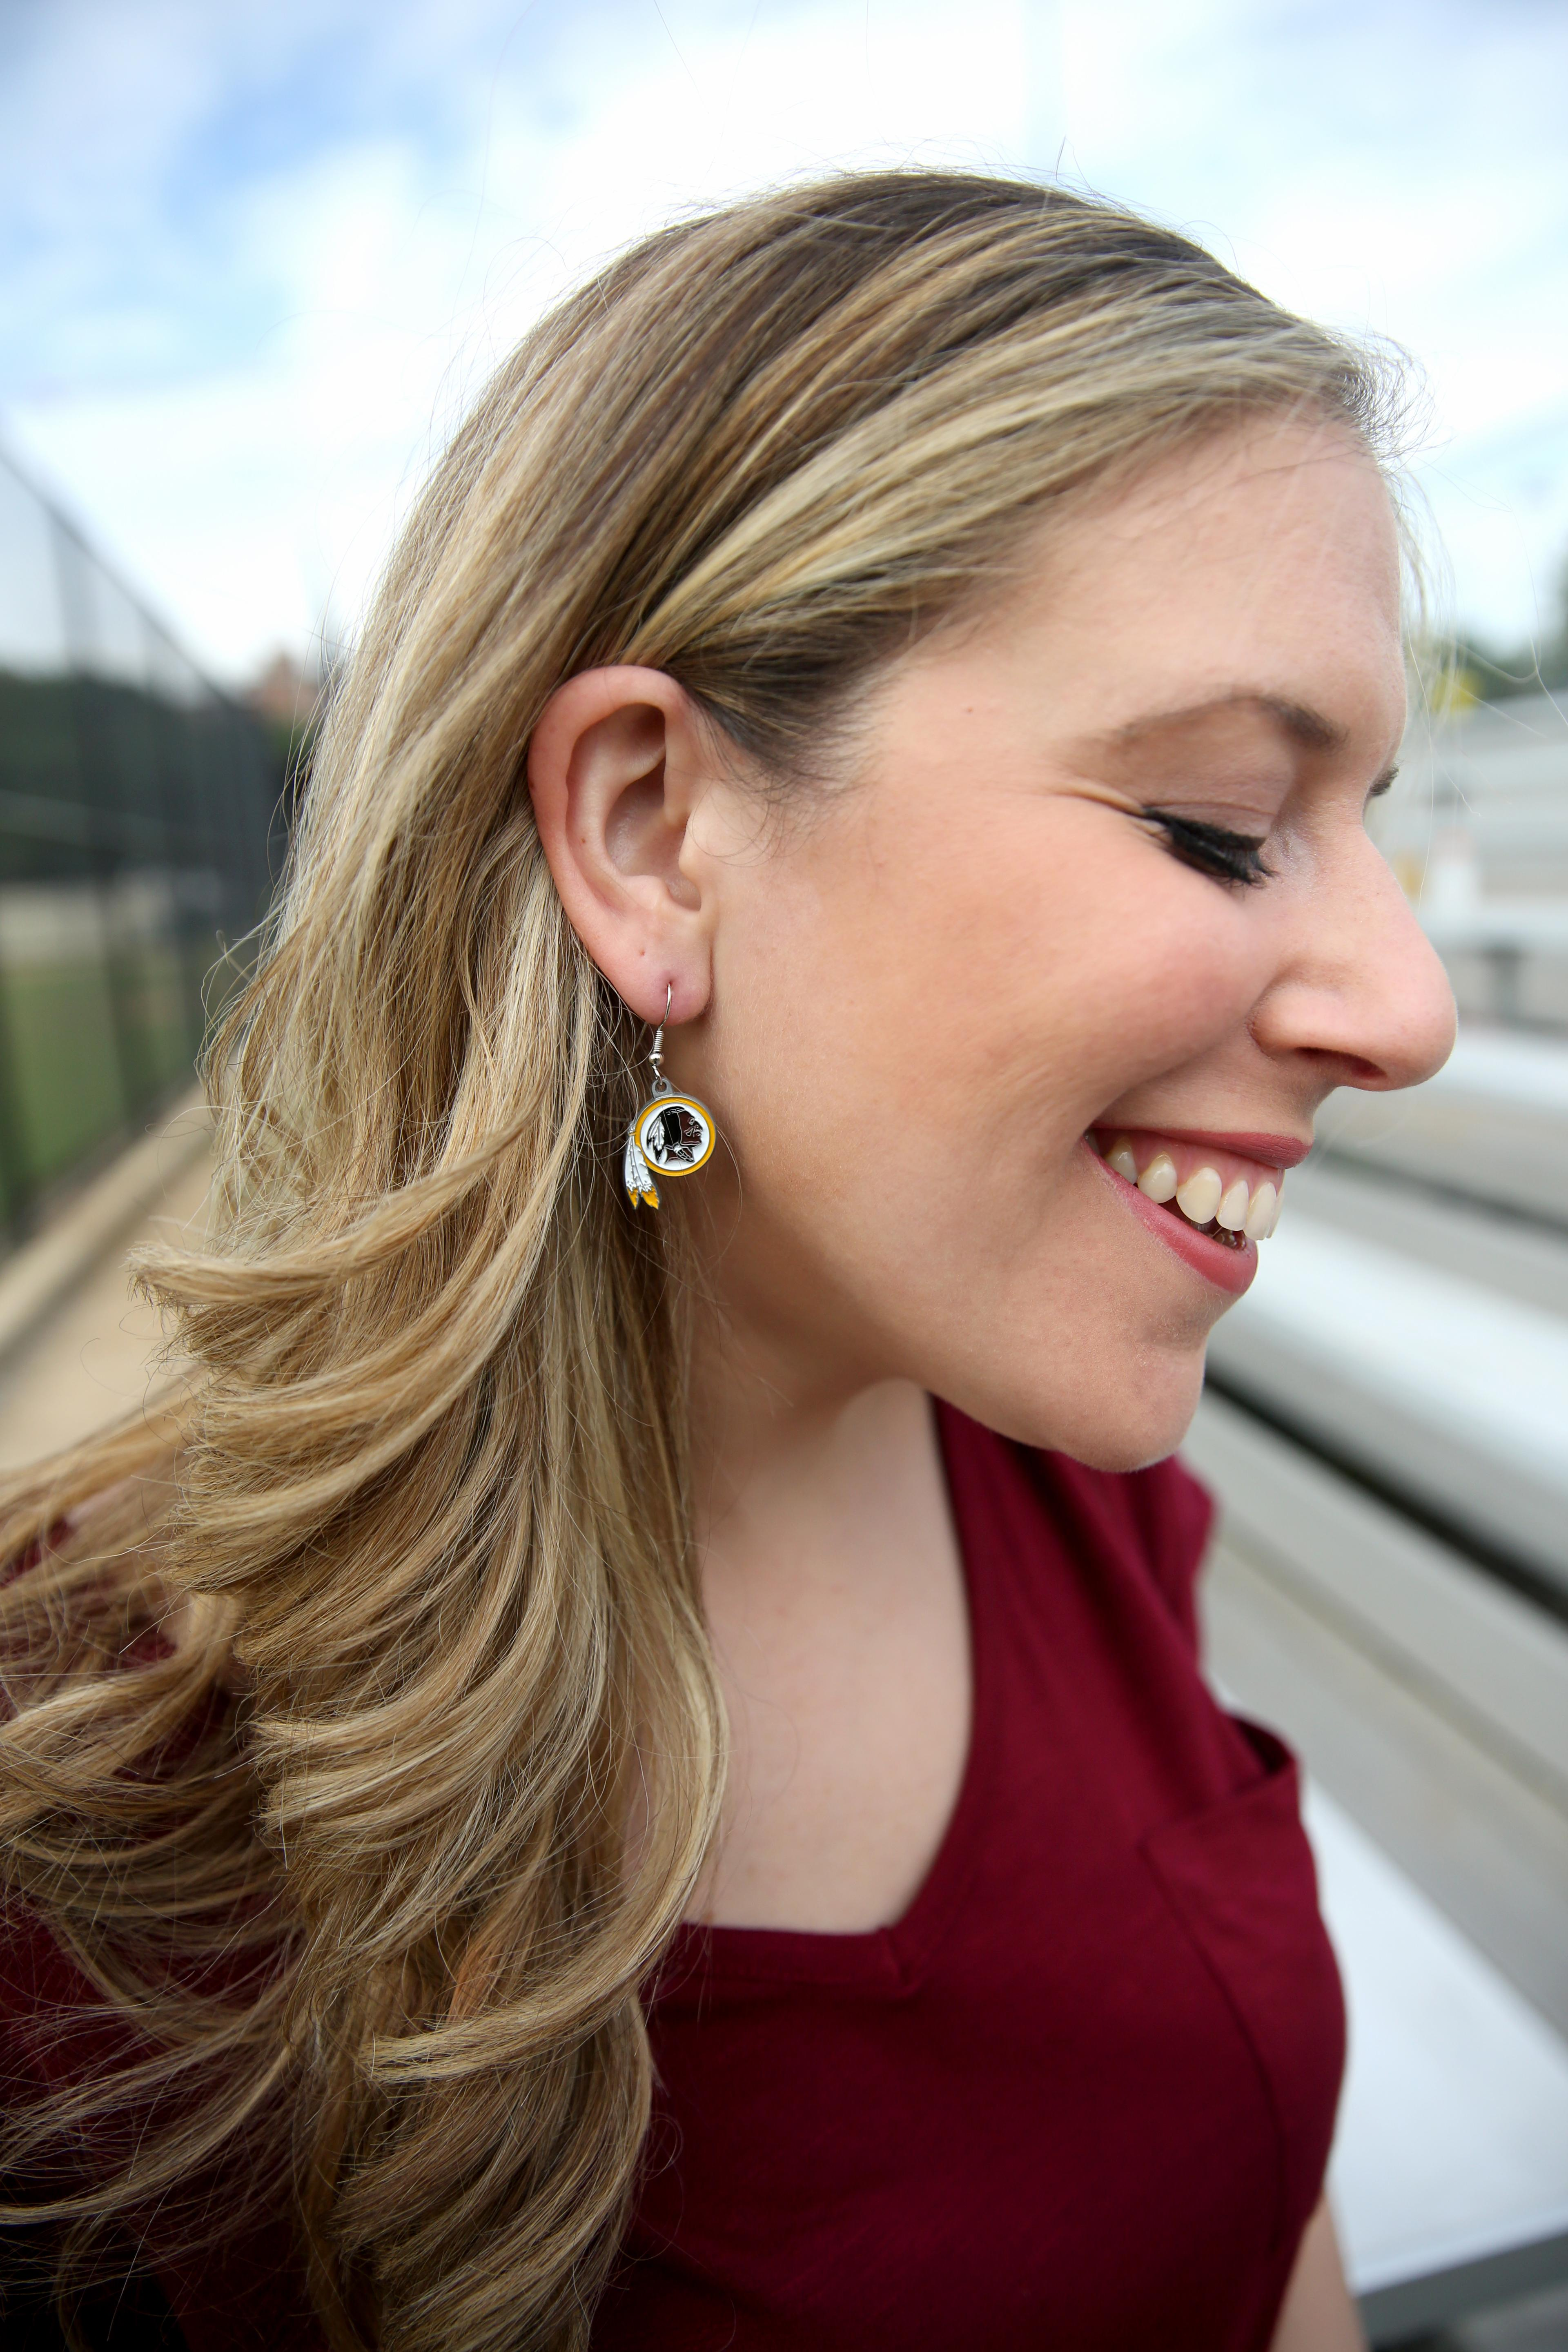 To give it that football vibe, I've accessorized with some pretty funny additions such as redskins earrings (they make these for all the NFL teams) and a pair of flats that match. (Image: Amanda Andrade-Rhoades/ DC Refined)